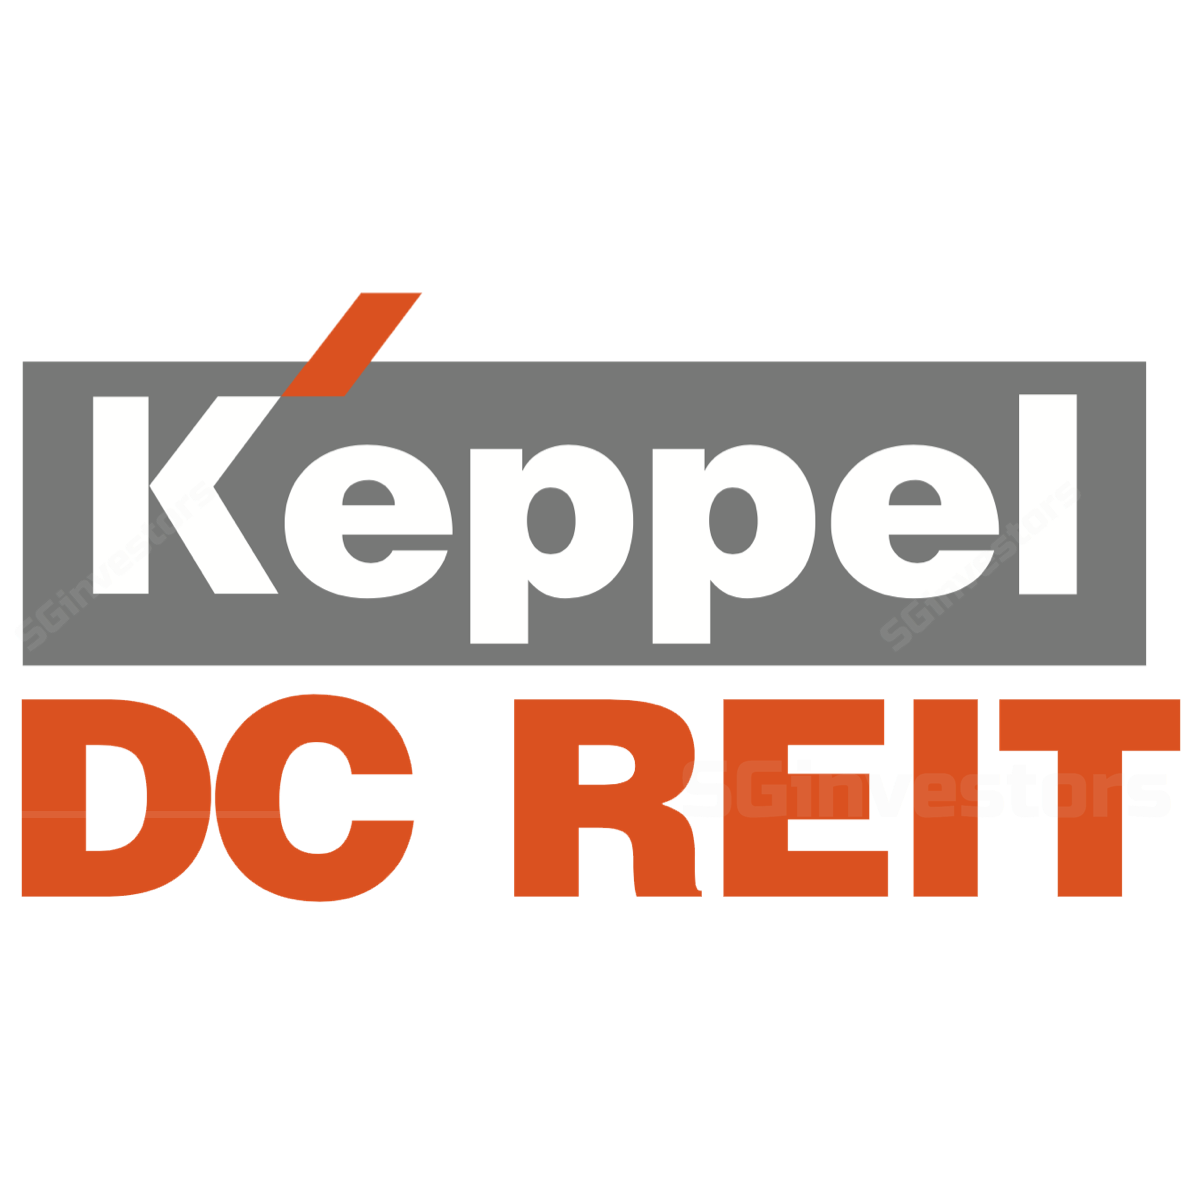 Keppel DC REIT - CIMB Research 2017-10-16: 3Q17: A Straightforward Quarter